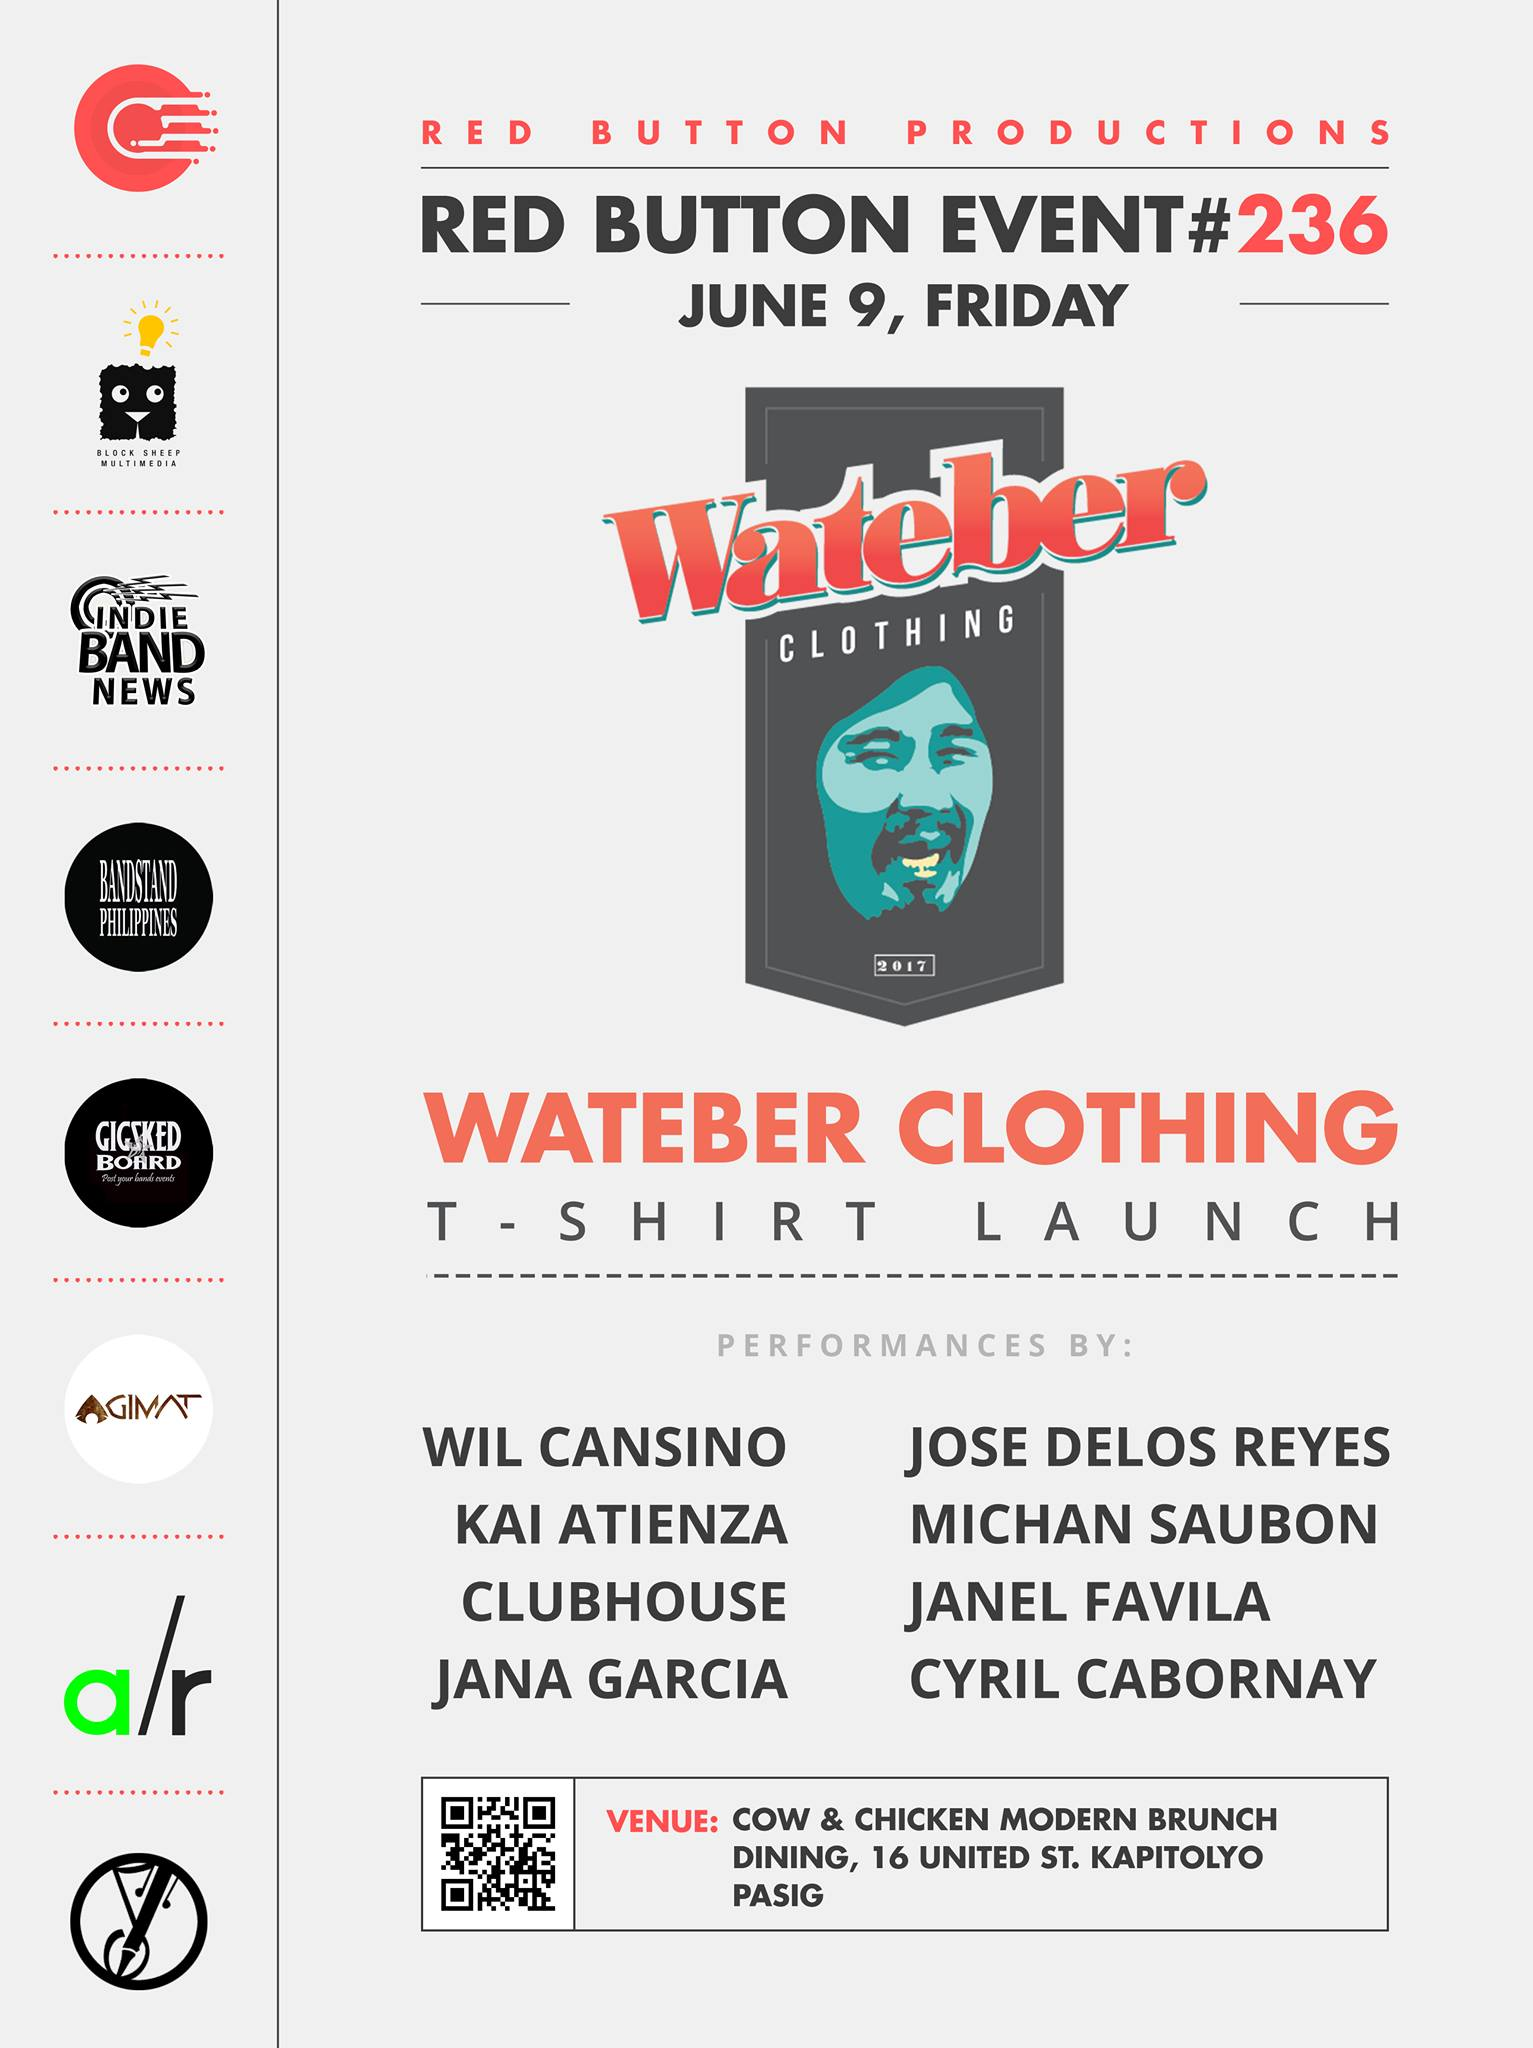 Red Button Productions Like This Page · June 6 · Edited · Red Button Productions present Wateber Clothing: T-SHIRT LAUNCH Red Button Event #236 June 9, Friday at Cow & Chicken Modern Brunch Dining, United St. Kapitolyo, Pasig NO ENTRANCE FEE!!! OPEN JAM AFTER performances by: Jose Delos Reyes Michan Saubon Janel Favila Wil Cansino Kai Atienza Clubhouse Cyril Cabornay Jana Garcia Event Link: https://www.facebook.com/events/464661557203528 Media Partners: Block Sheep Multimedia Indie Band News Bandstand Philippines Gig Sked Board Agimat: Sining at Kulturang Pinoy Songwriters Philippines Adobo Radio — at Cow & Chicken Modern Brunch Dining.